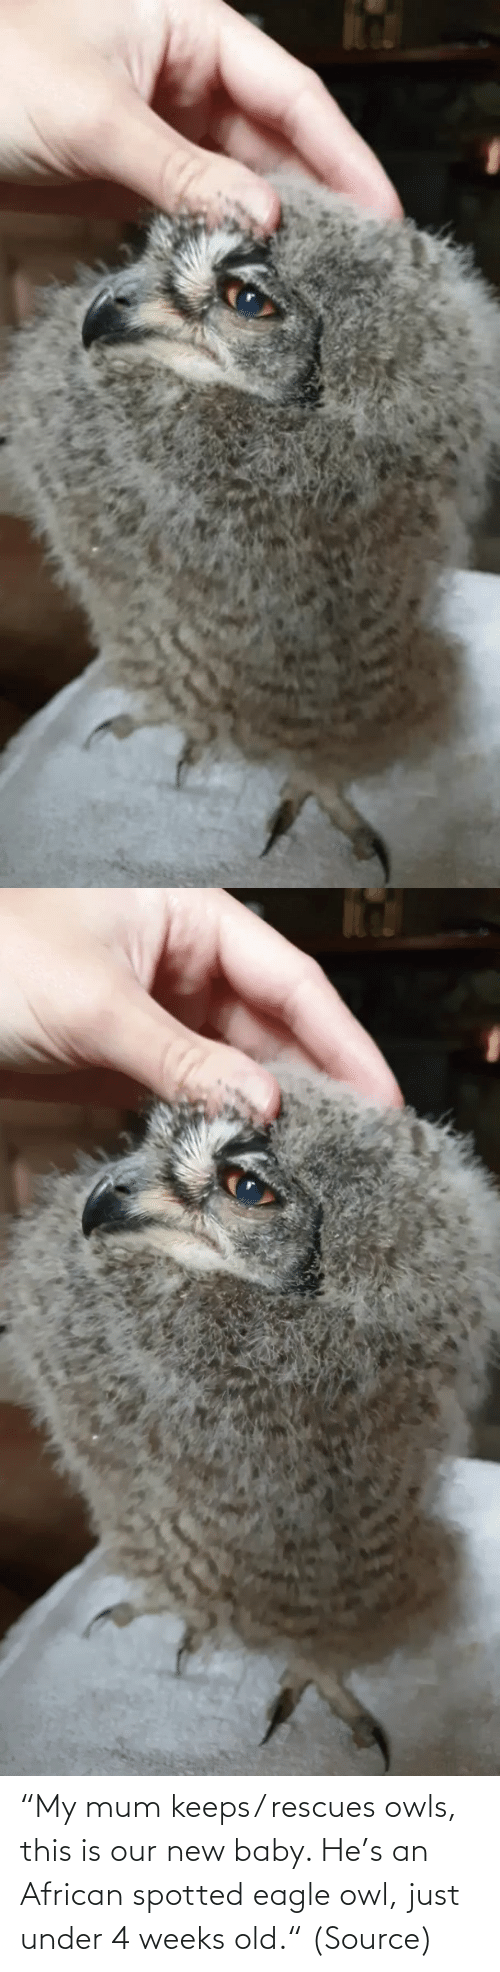 "just: ""My mum keeps/ rescues owls, this is our new baby. He's an African spotted eagle owl, just under 4 weeks old."" (Source)"